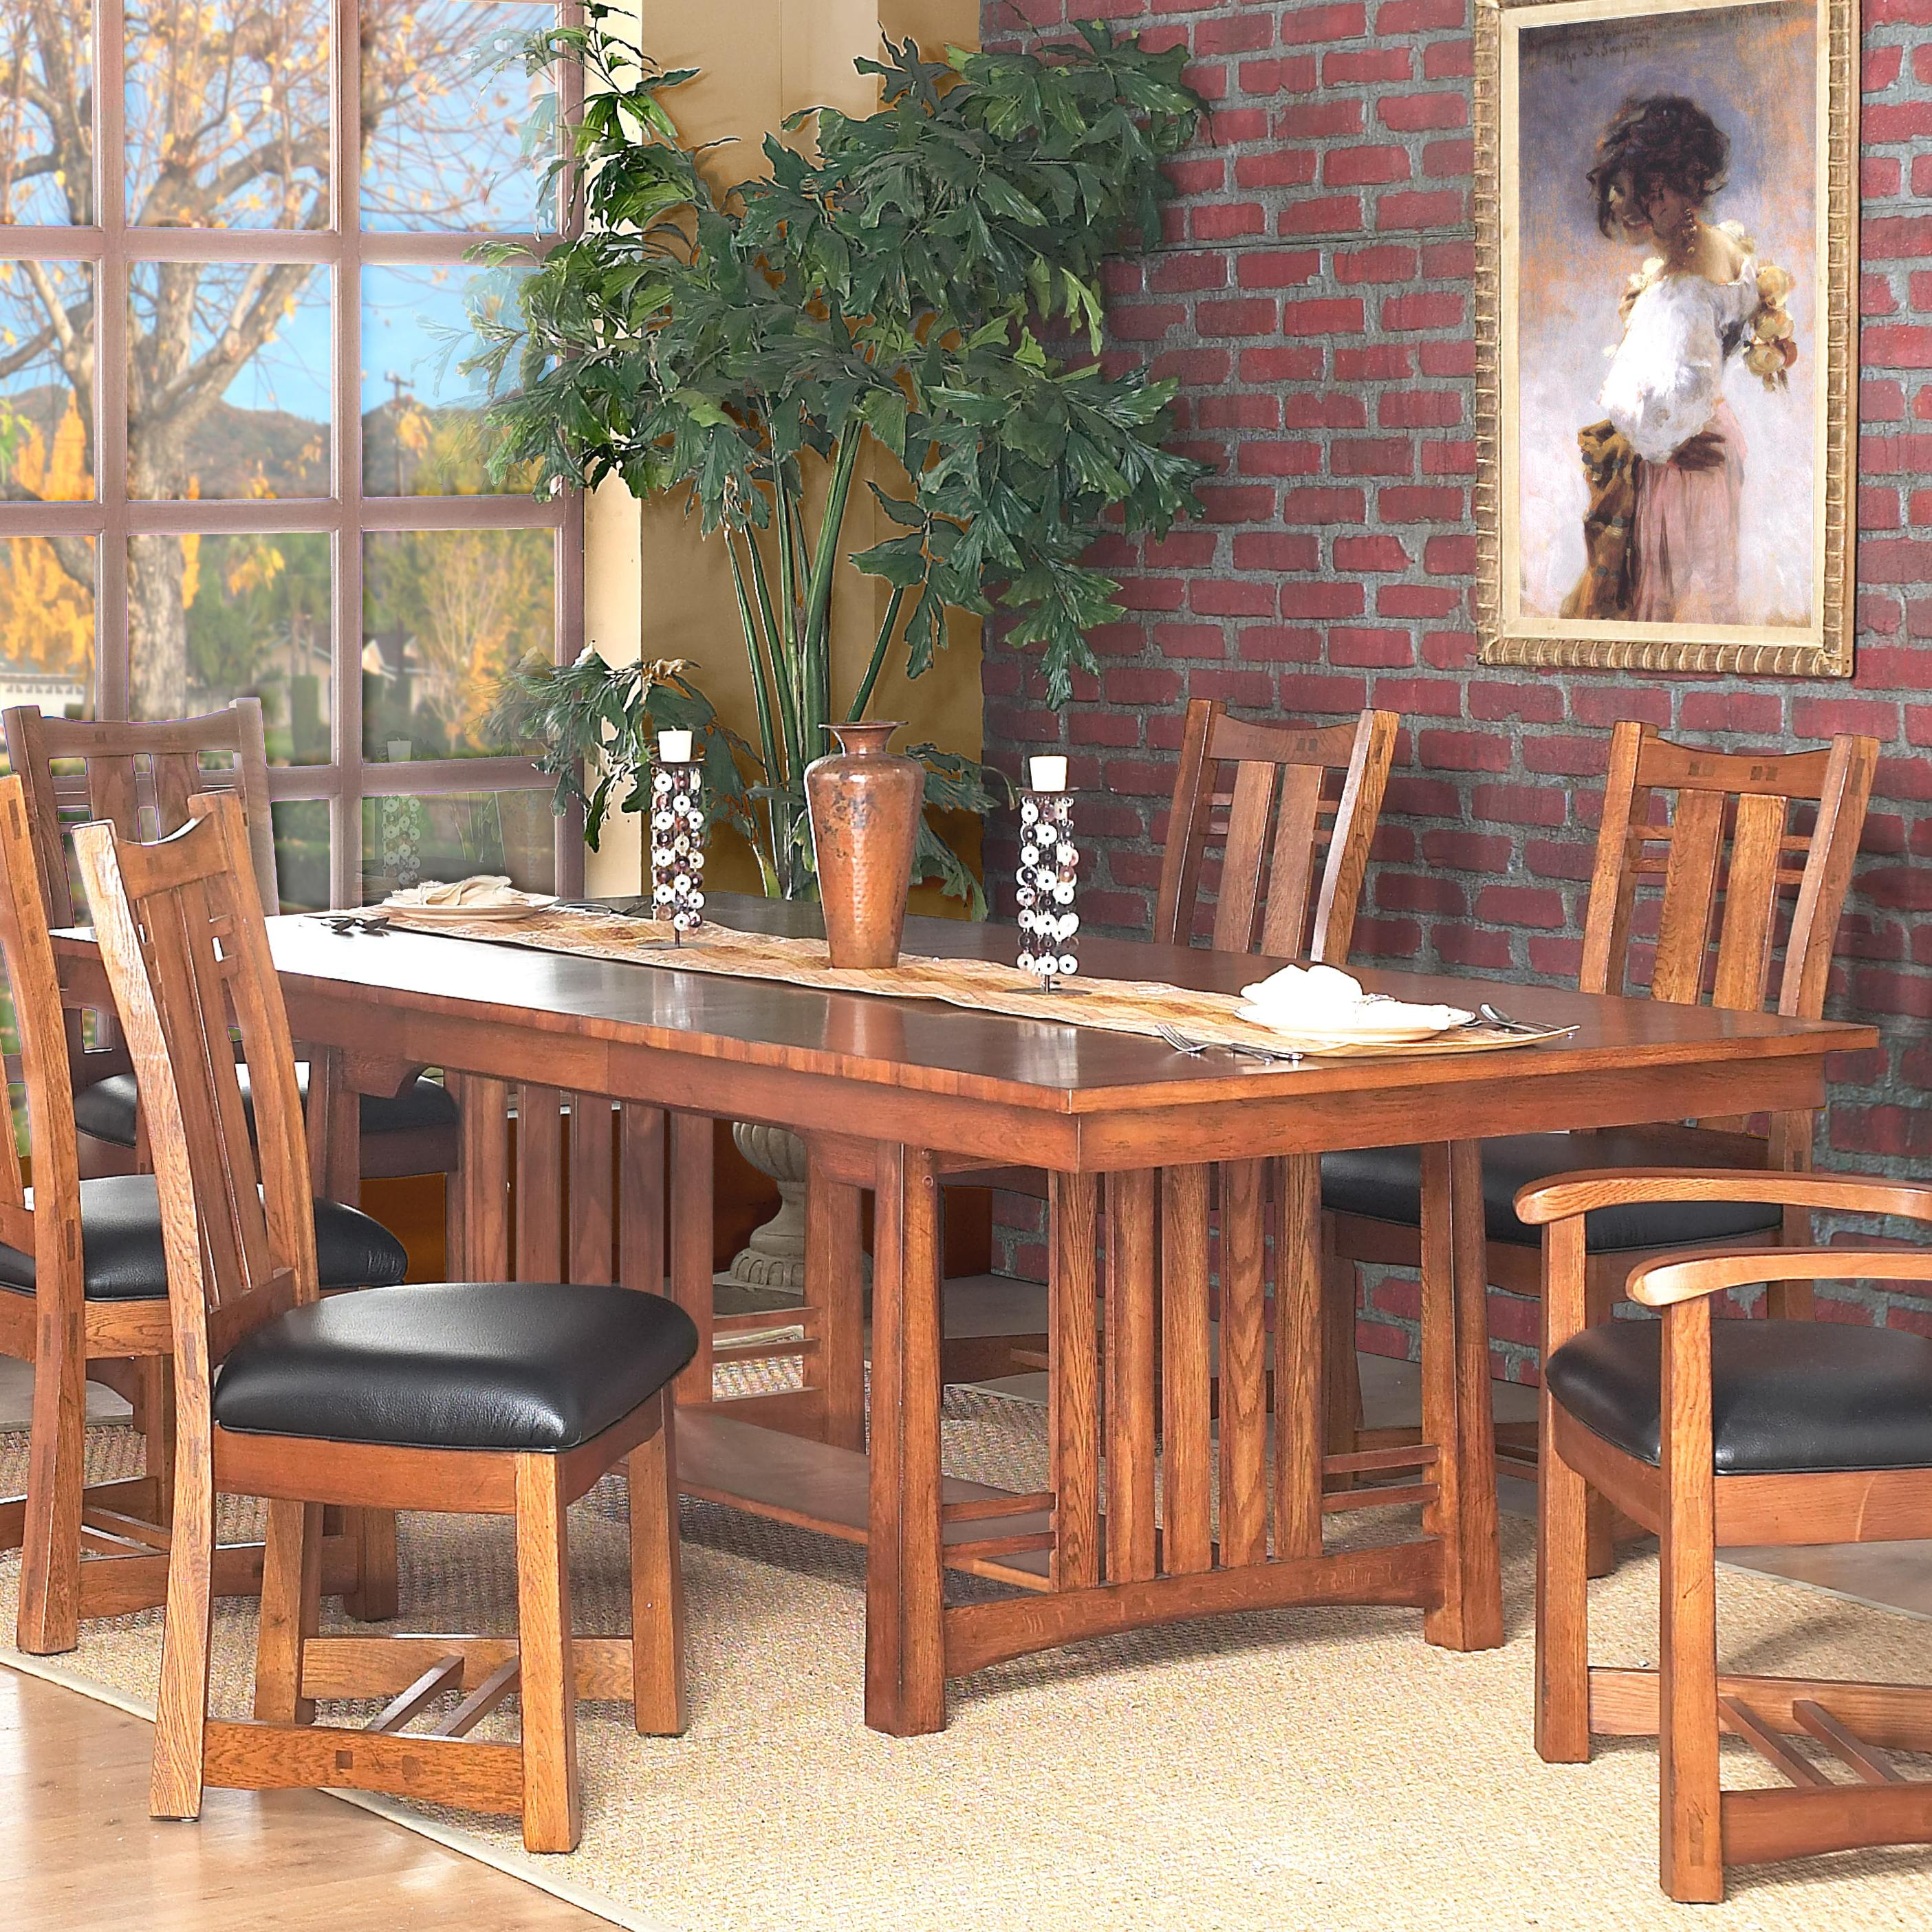 Bungalow Furniture Store: GS Furniture Bungalow Rectangular Dining Table